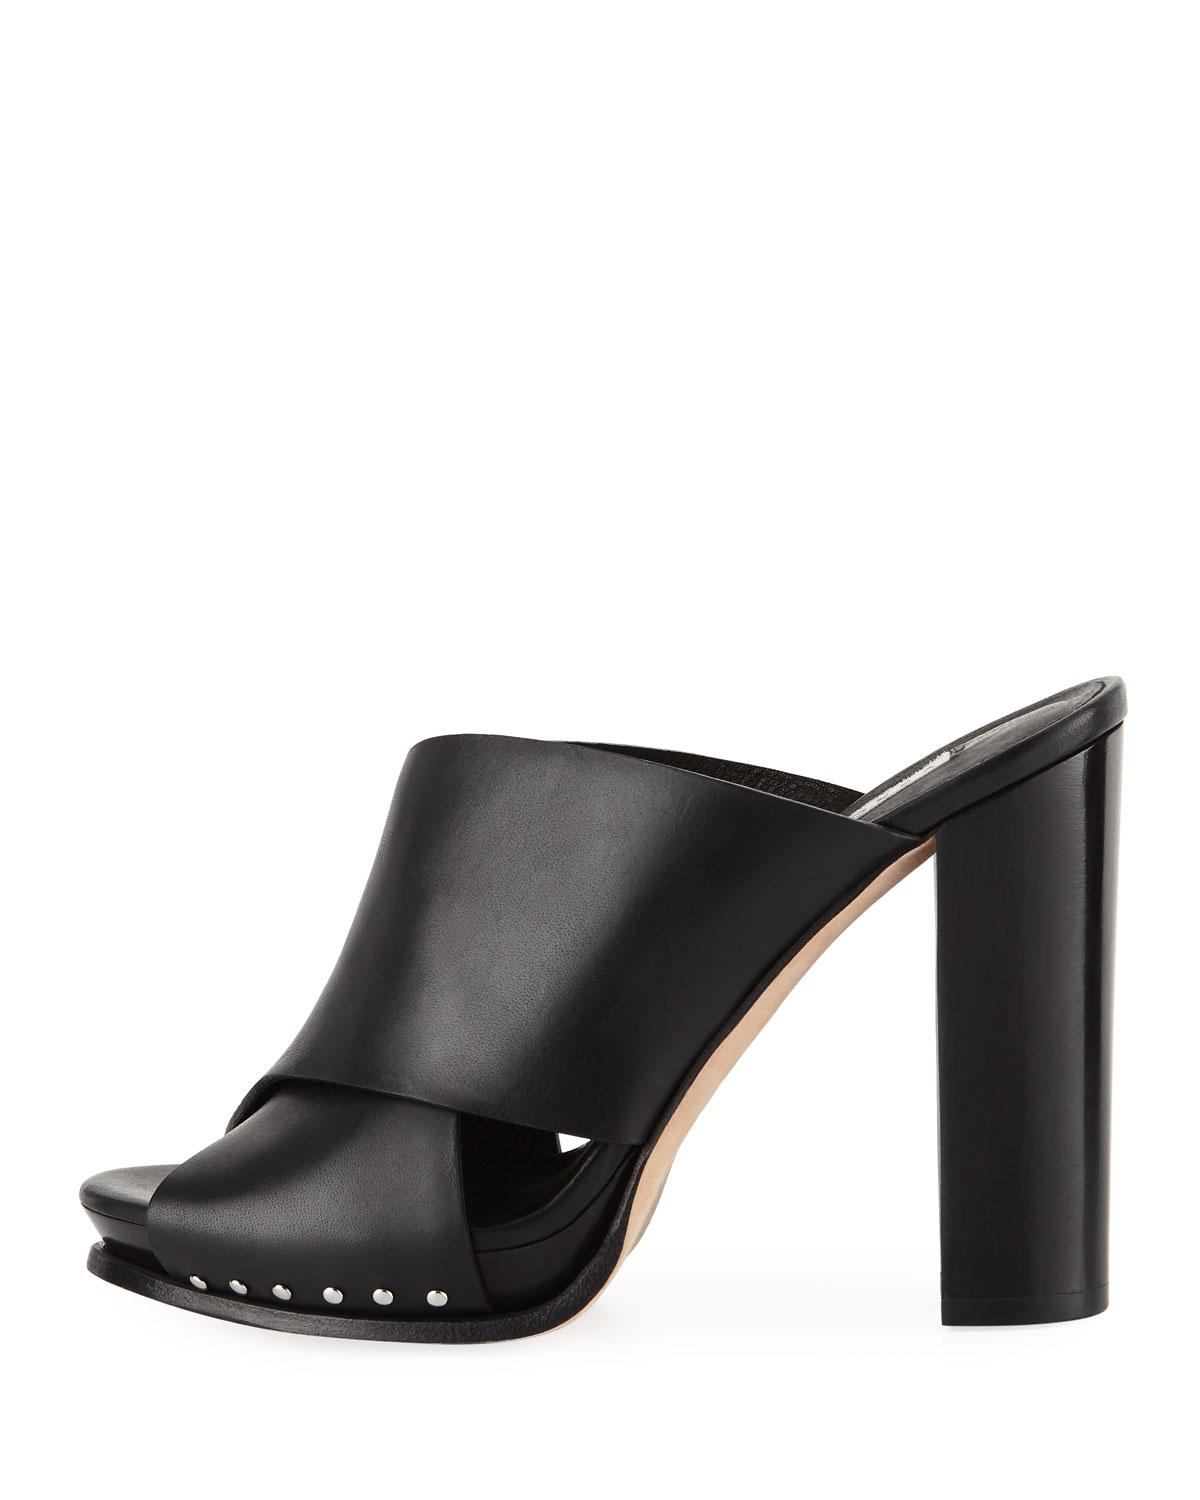 Black Shoes With Wooden Heel